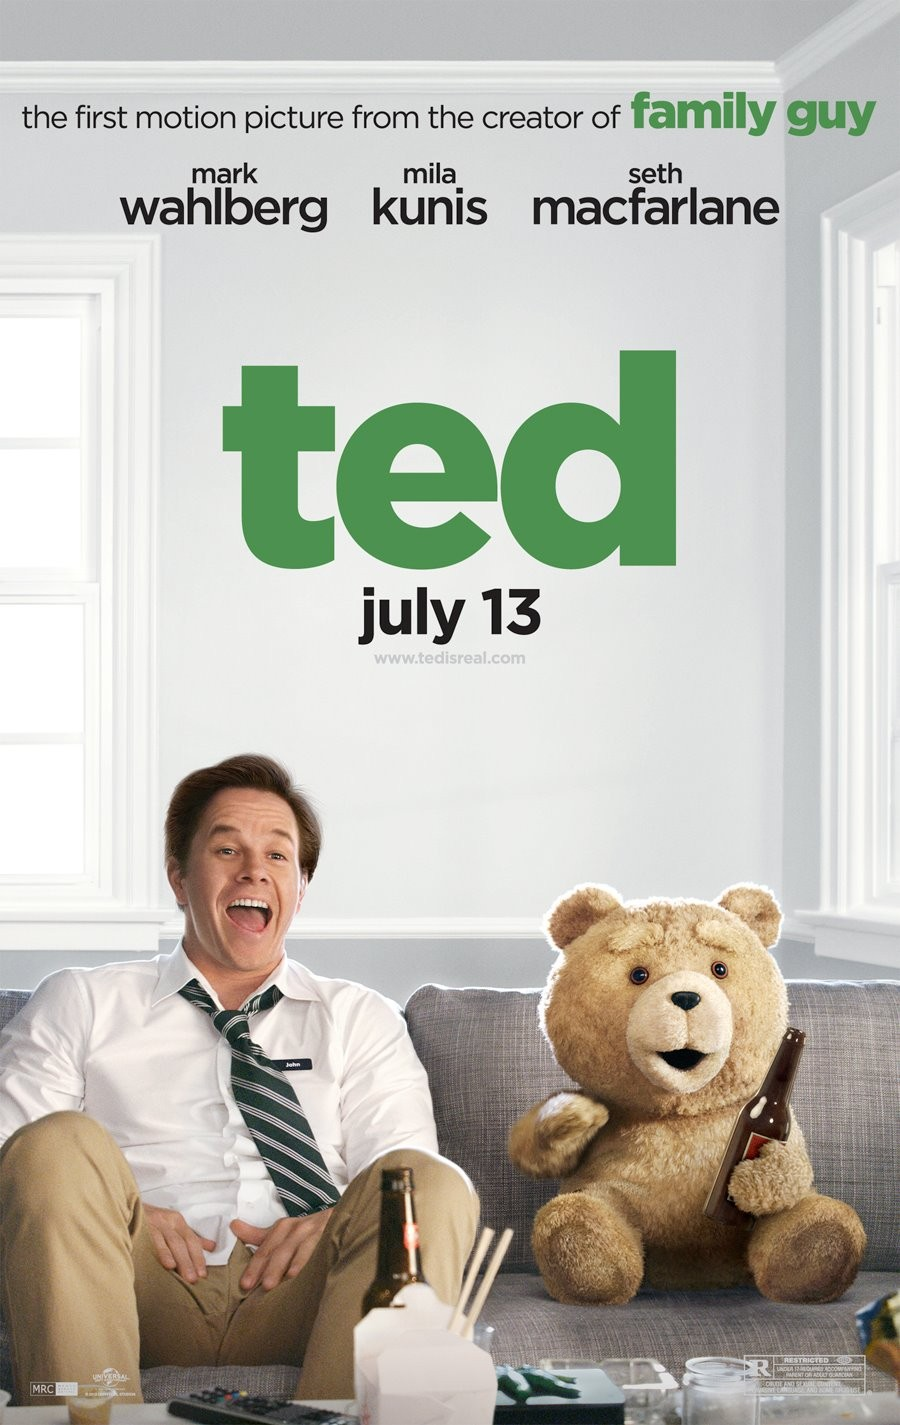 Seth MacFarlane's Ted joins the ranks of Harold and Kumar Go to White Castle and Observe and Report among razor-sharp cultural satires cleverly disguised